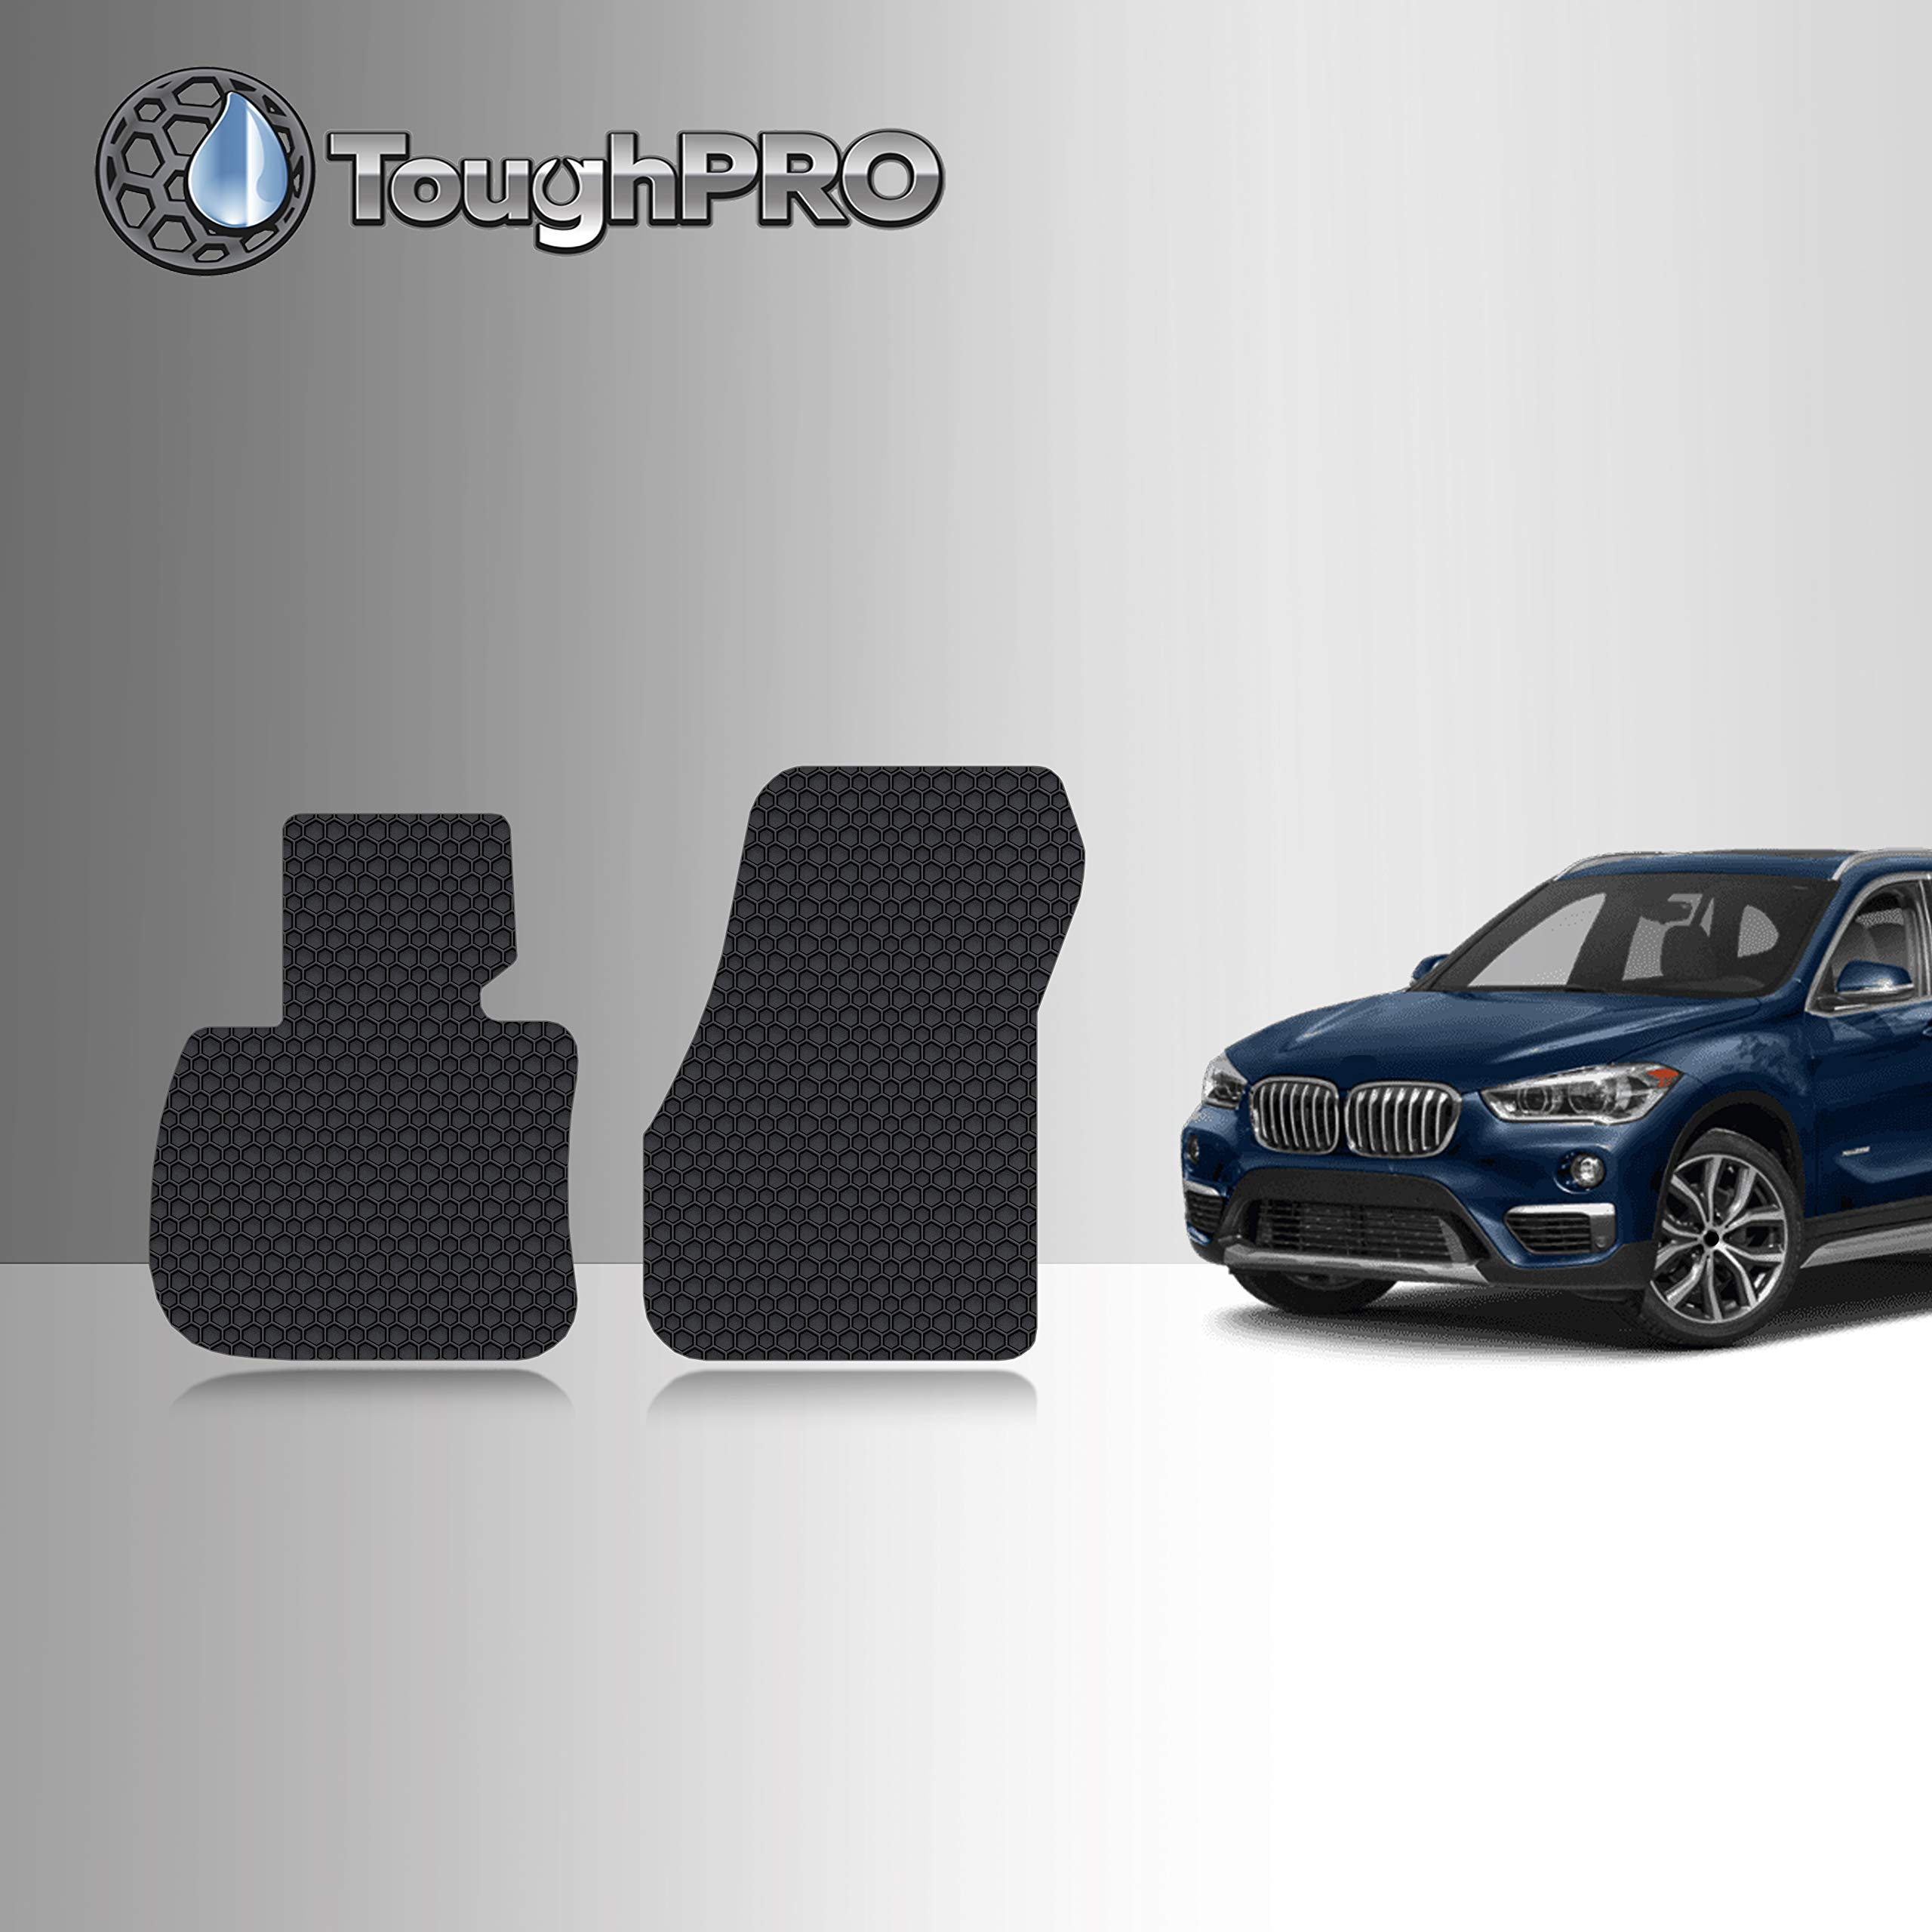 TOUGHPRO Floor Mat Accessories Compatible with BMW X1 - All Weather - Heavy Duty - (Made in USA) - Black Rubber - 2016, 2017, 2018, 2019, 2020 (Front Mats)